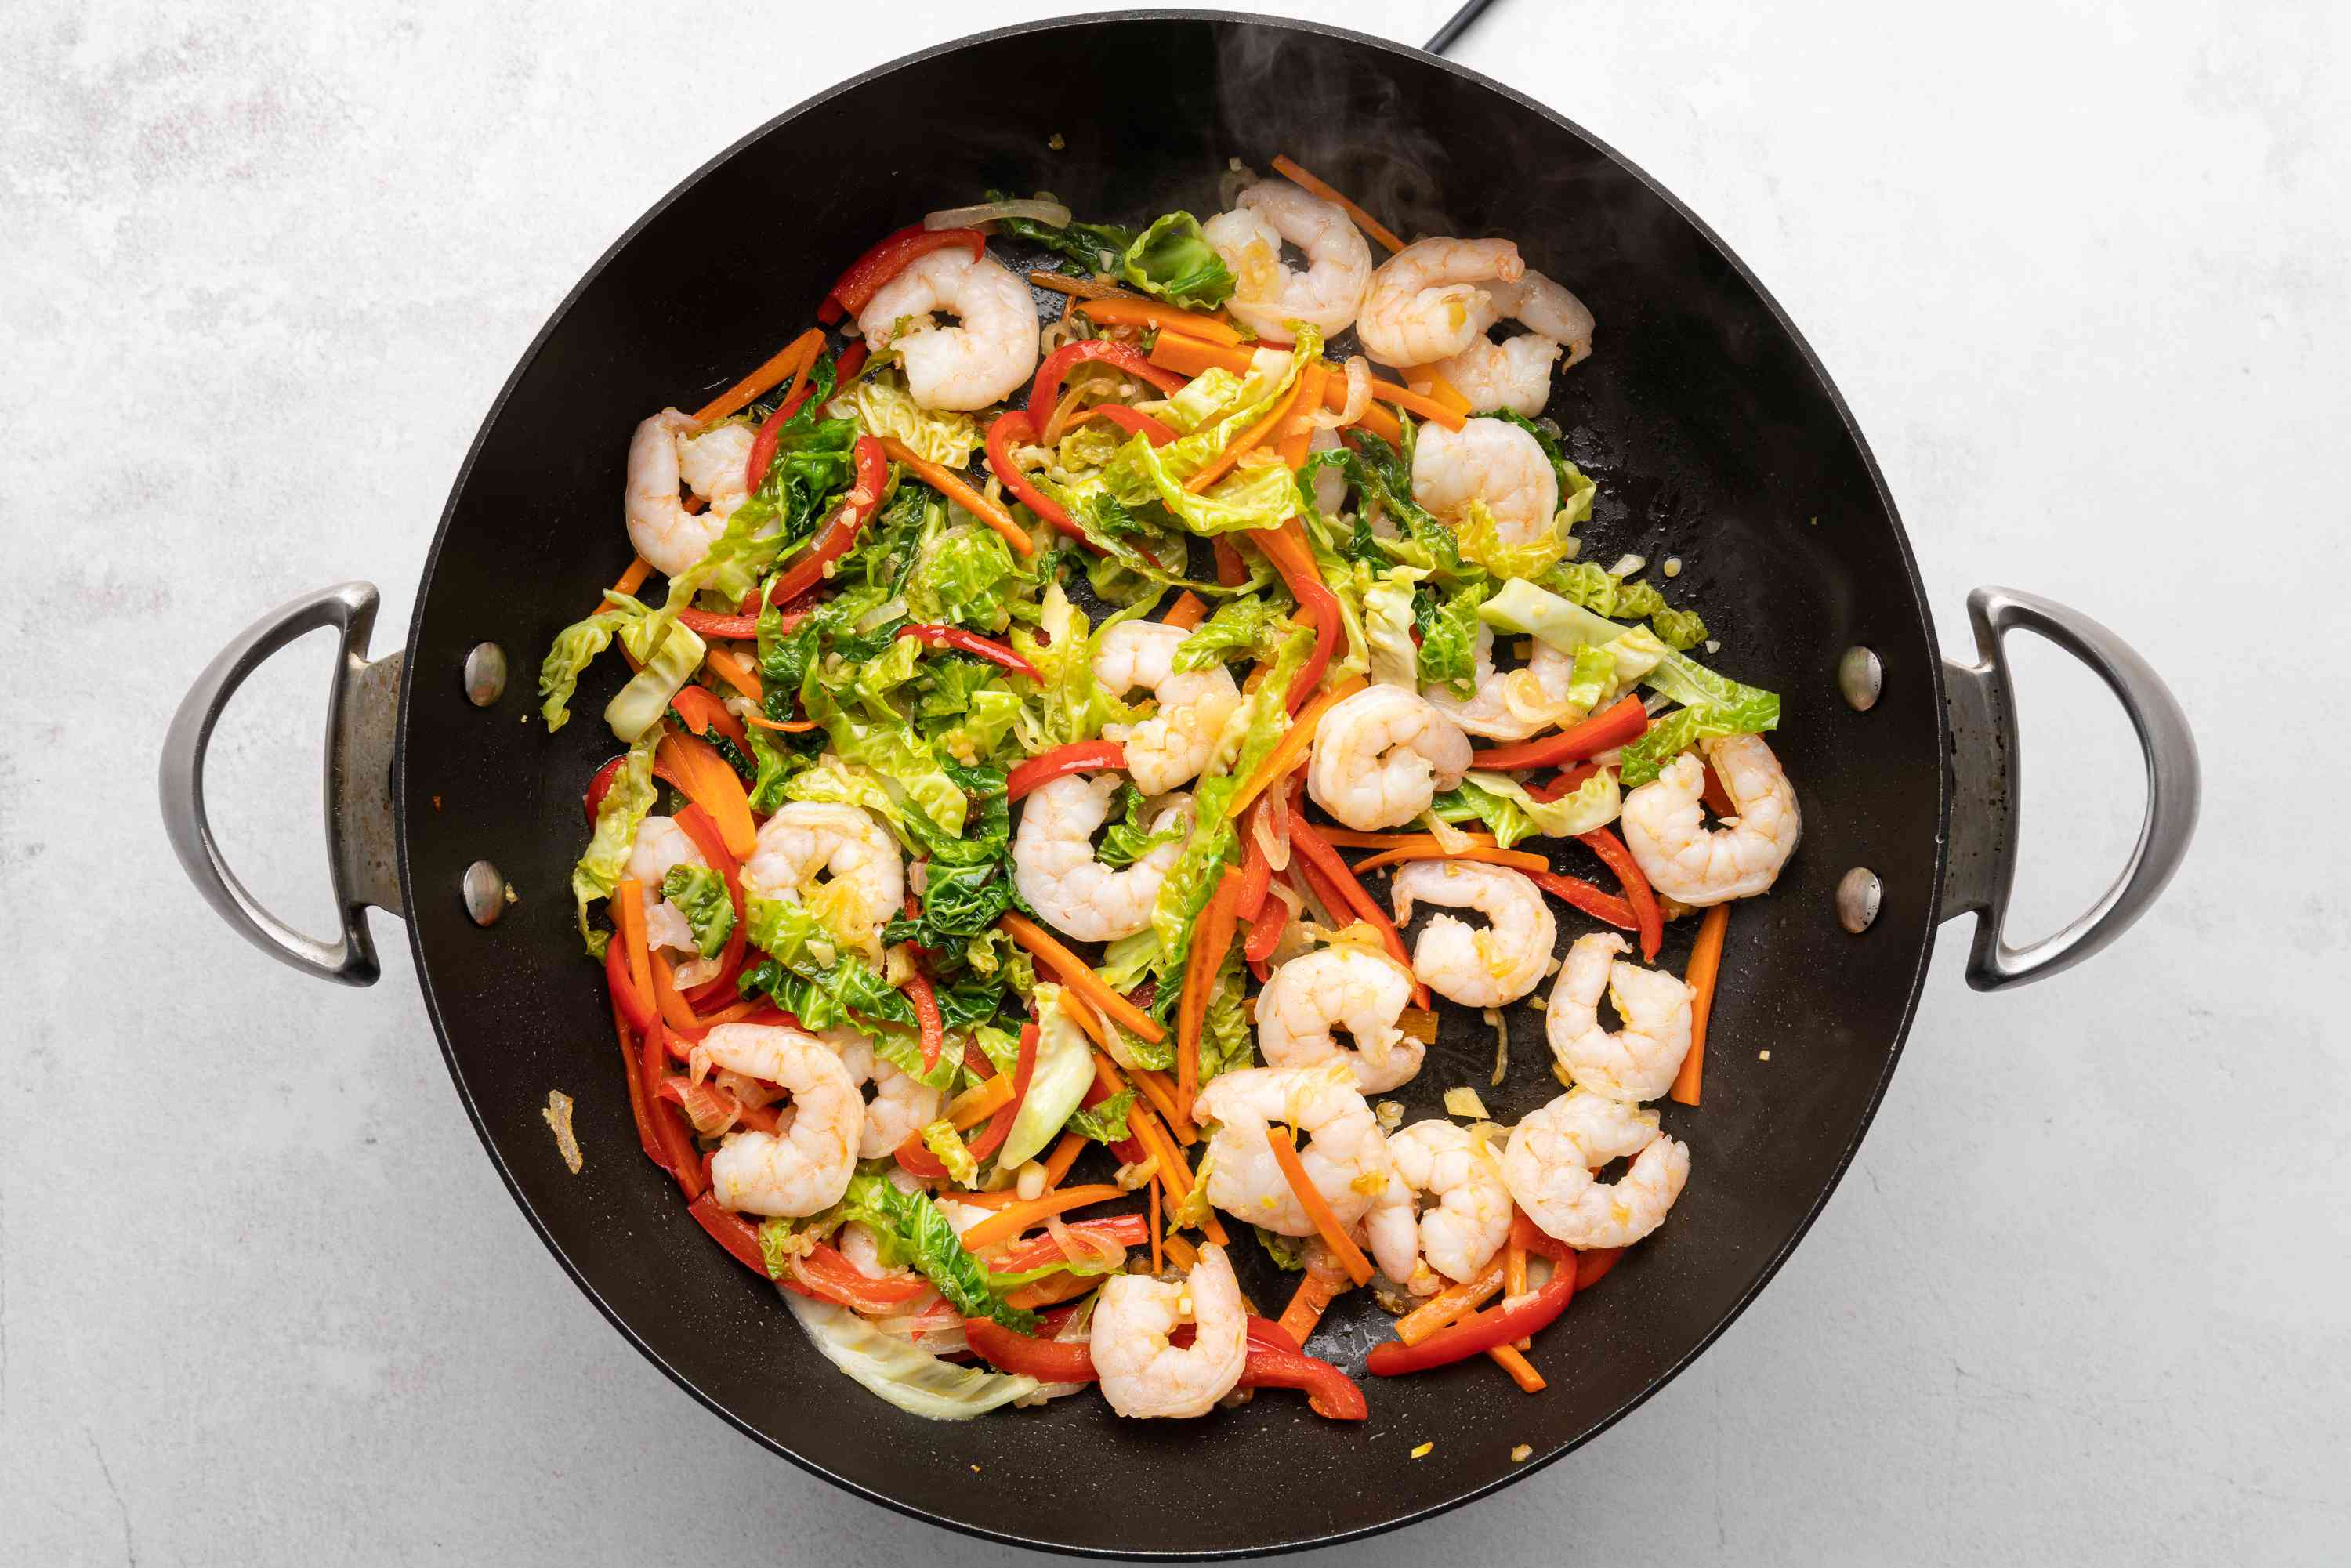 shrimp and vegetable mixture in a wok